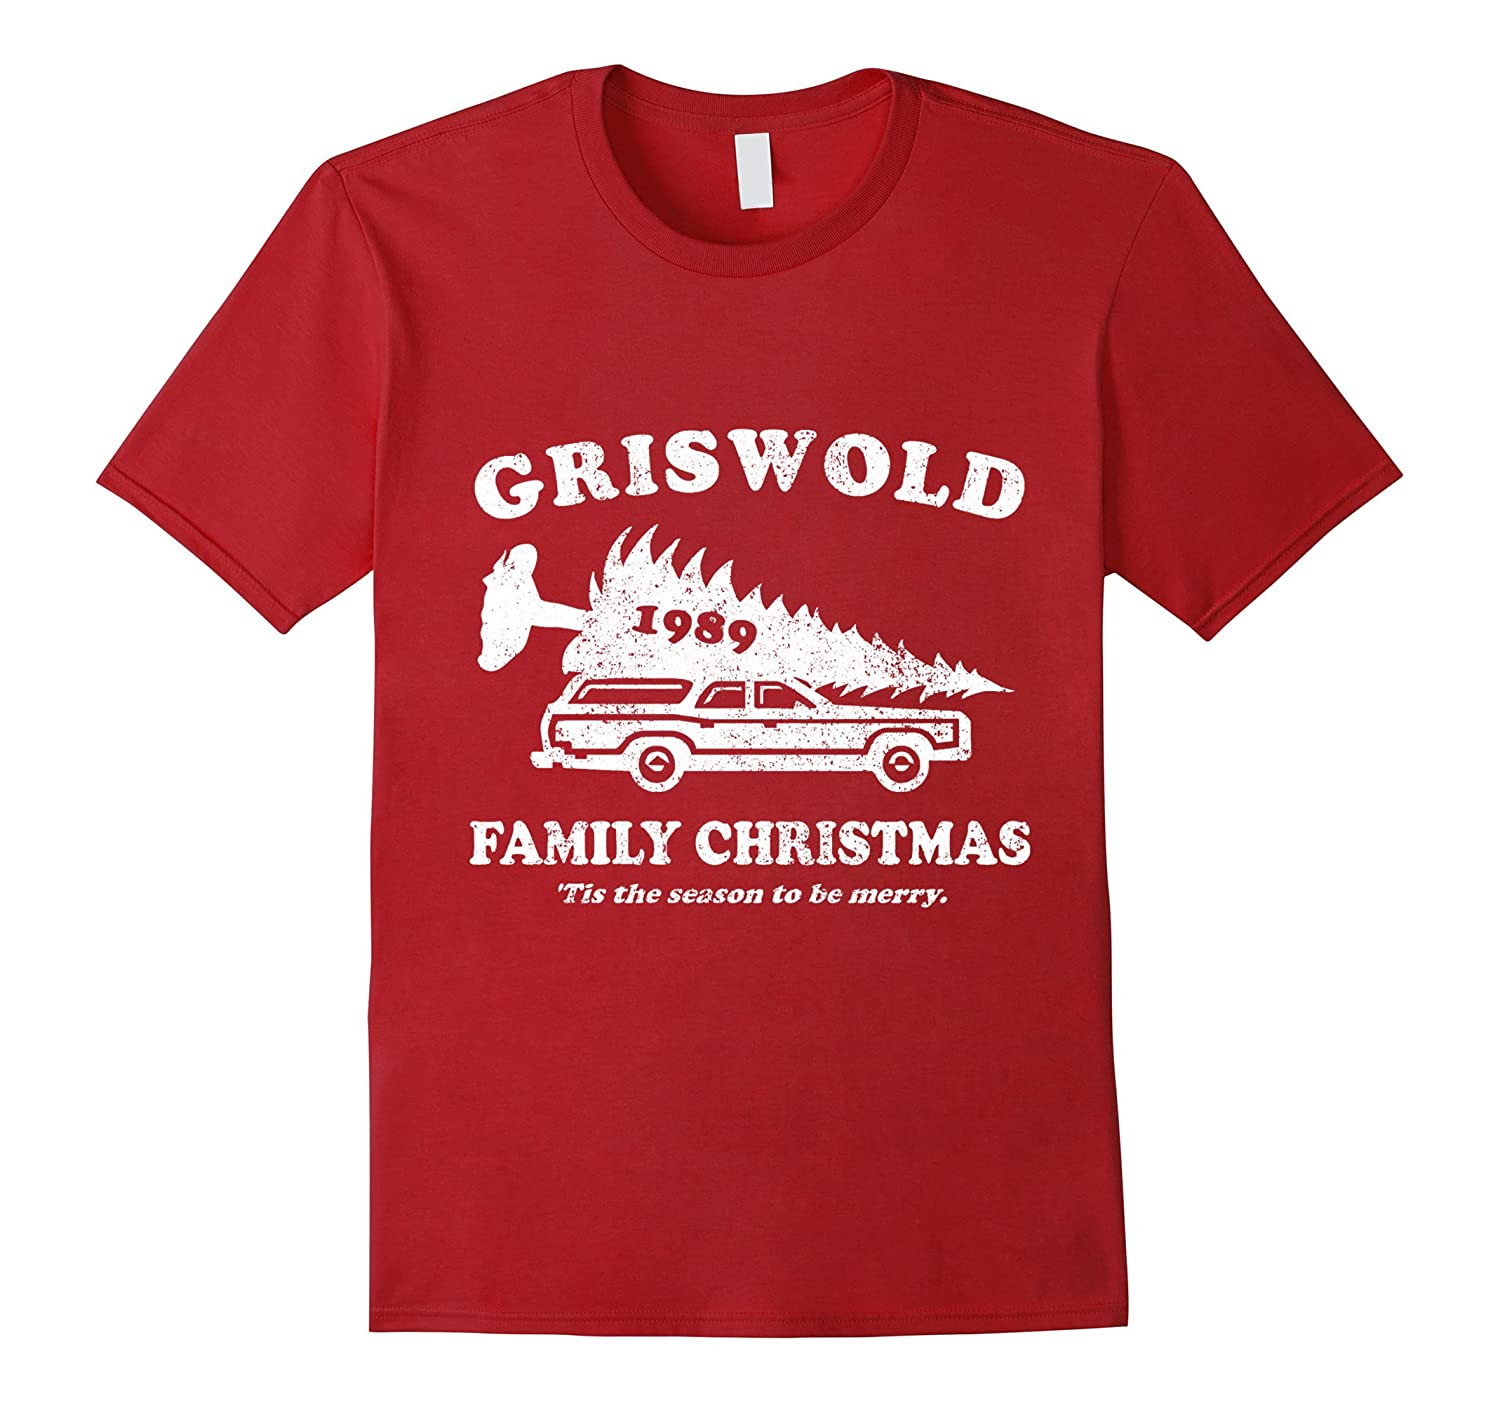 Griswold Family Christmas 1989 T-Shirt-RT